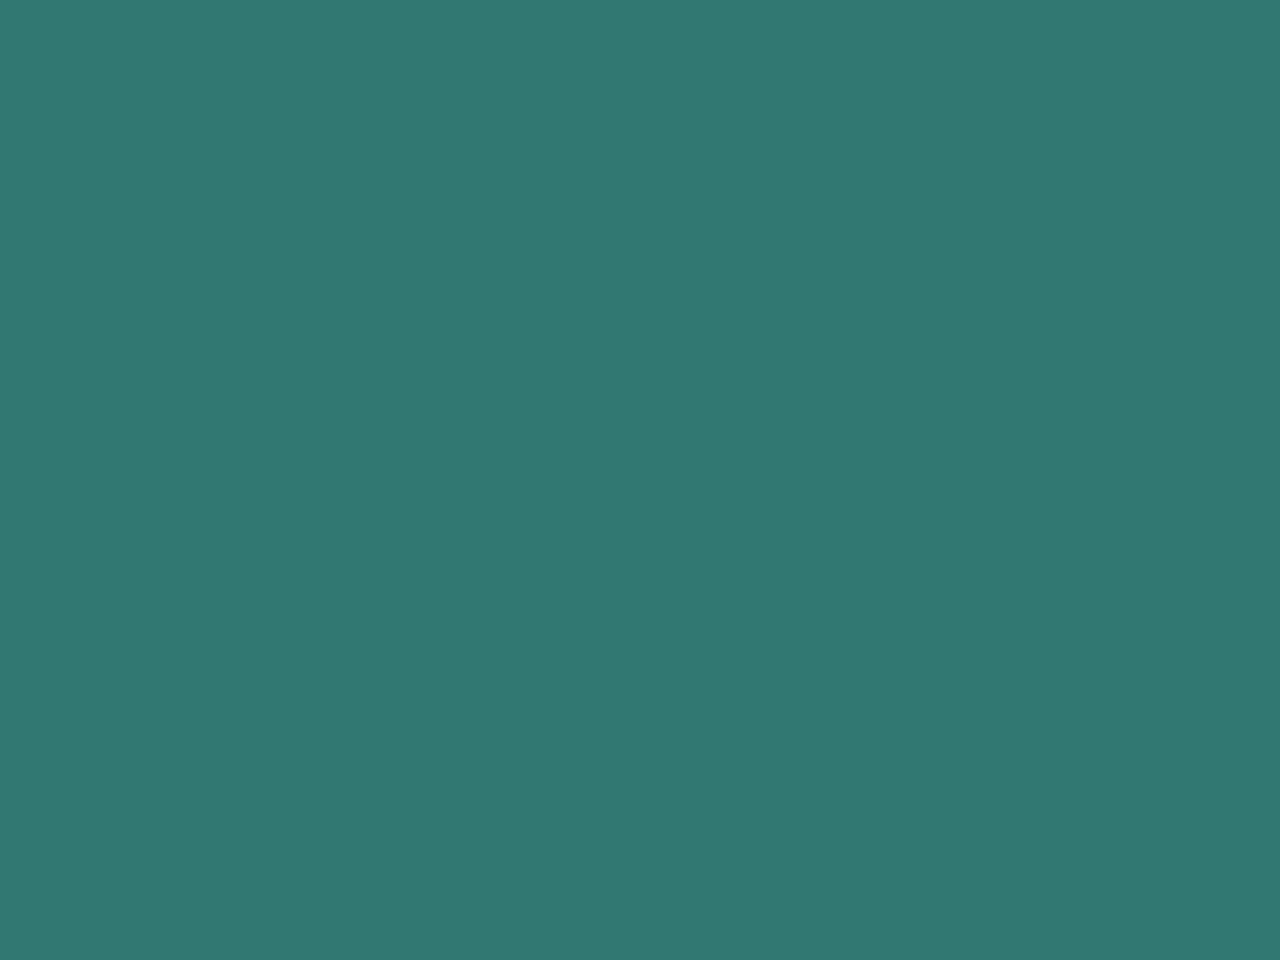 1280x960 Myrtle Green Solid Color Background